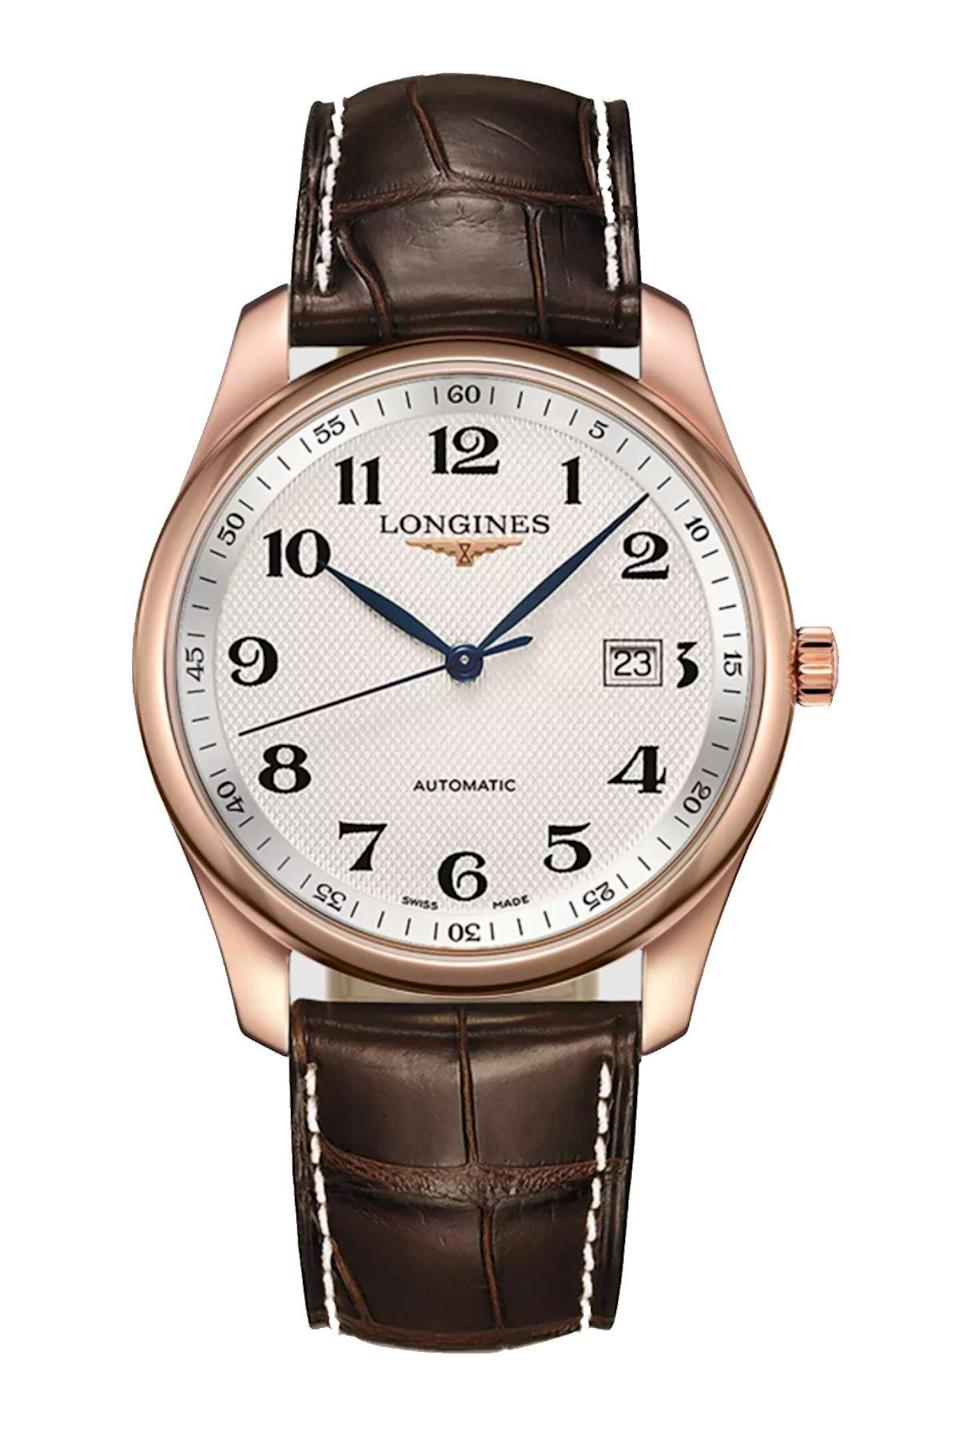 """<p><strong>Longines</strong></p><p>longines.com</p><p><strong>$6500.00</strong></p><p><a href=""""https://www.longines.com/en-us/watch-the-longines-master-collection-l2-793-8-78-3"""" rel=""""nofollow noopener"""" target=""""_blank"""" data-ylk=""""slk:Shop Now"""" class=""""link rapid-noclick-resp"""">Shop Now</a></p><p>Simple and refined, with just a touch of the blended gold finish.</p>"""